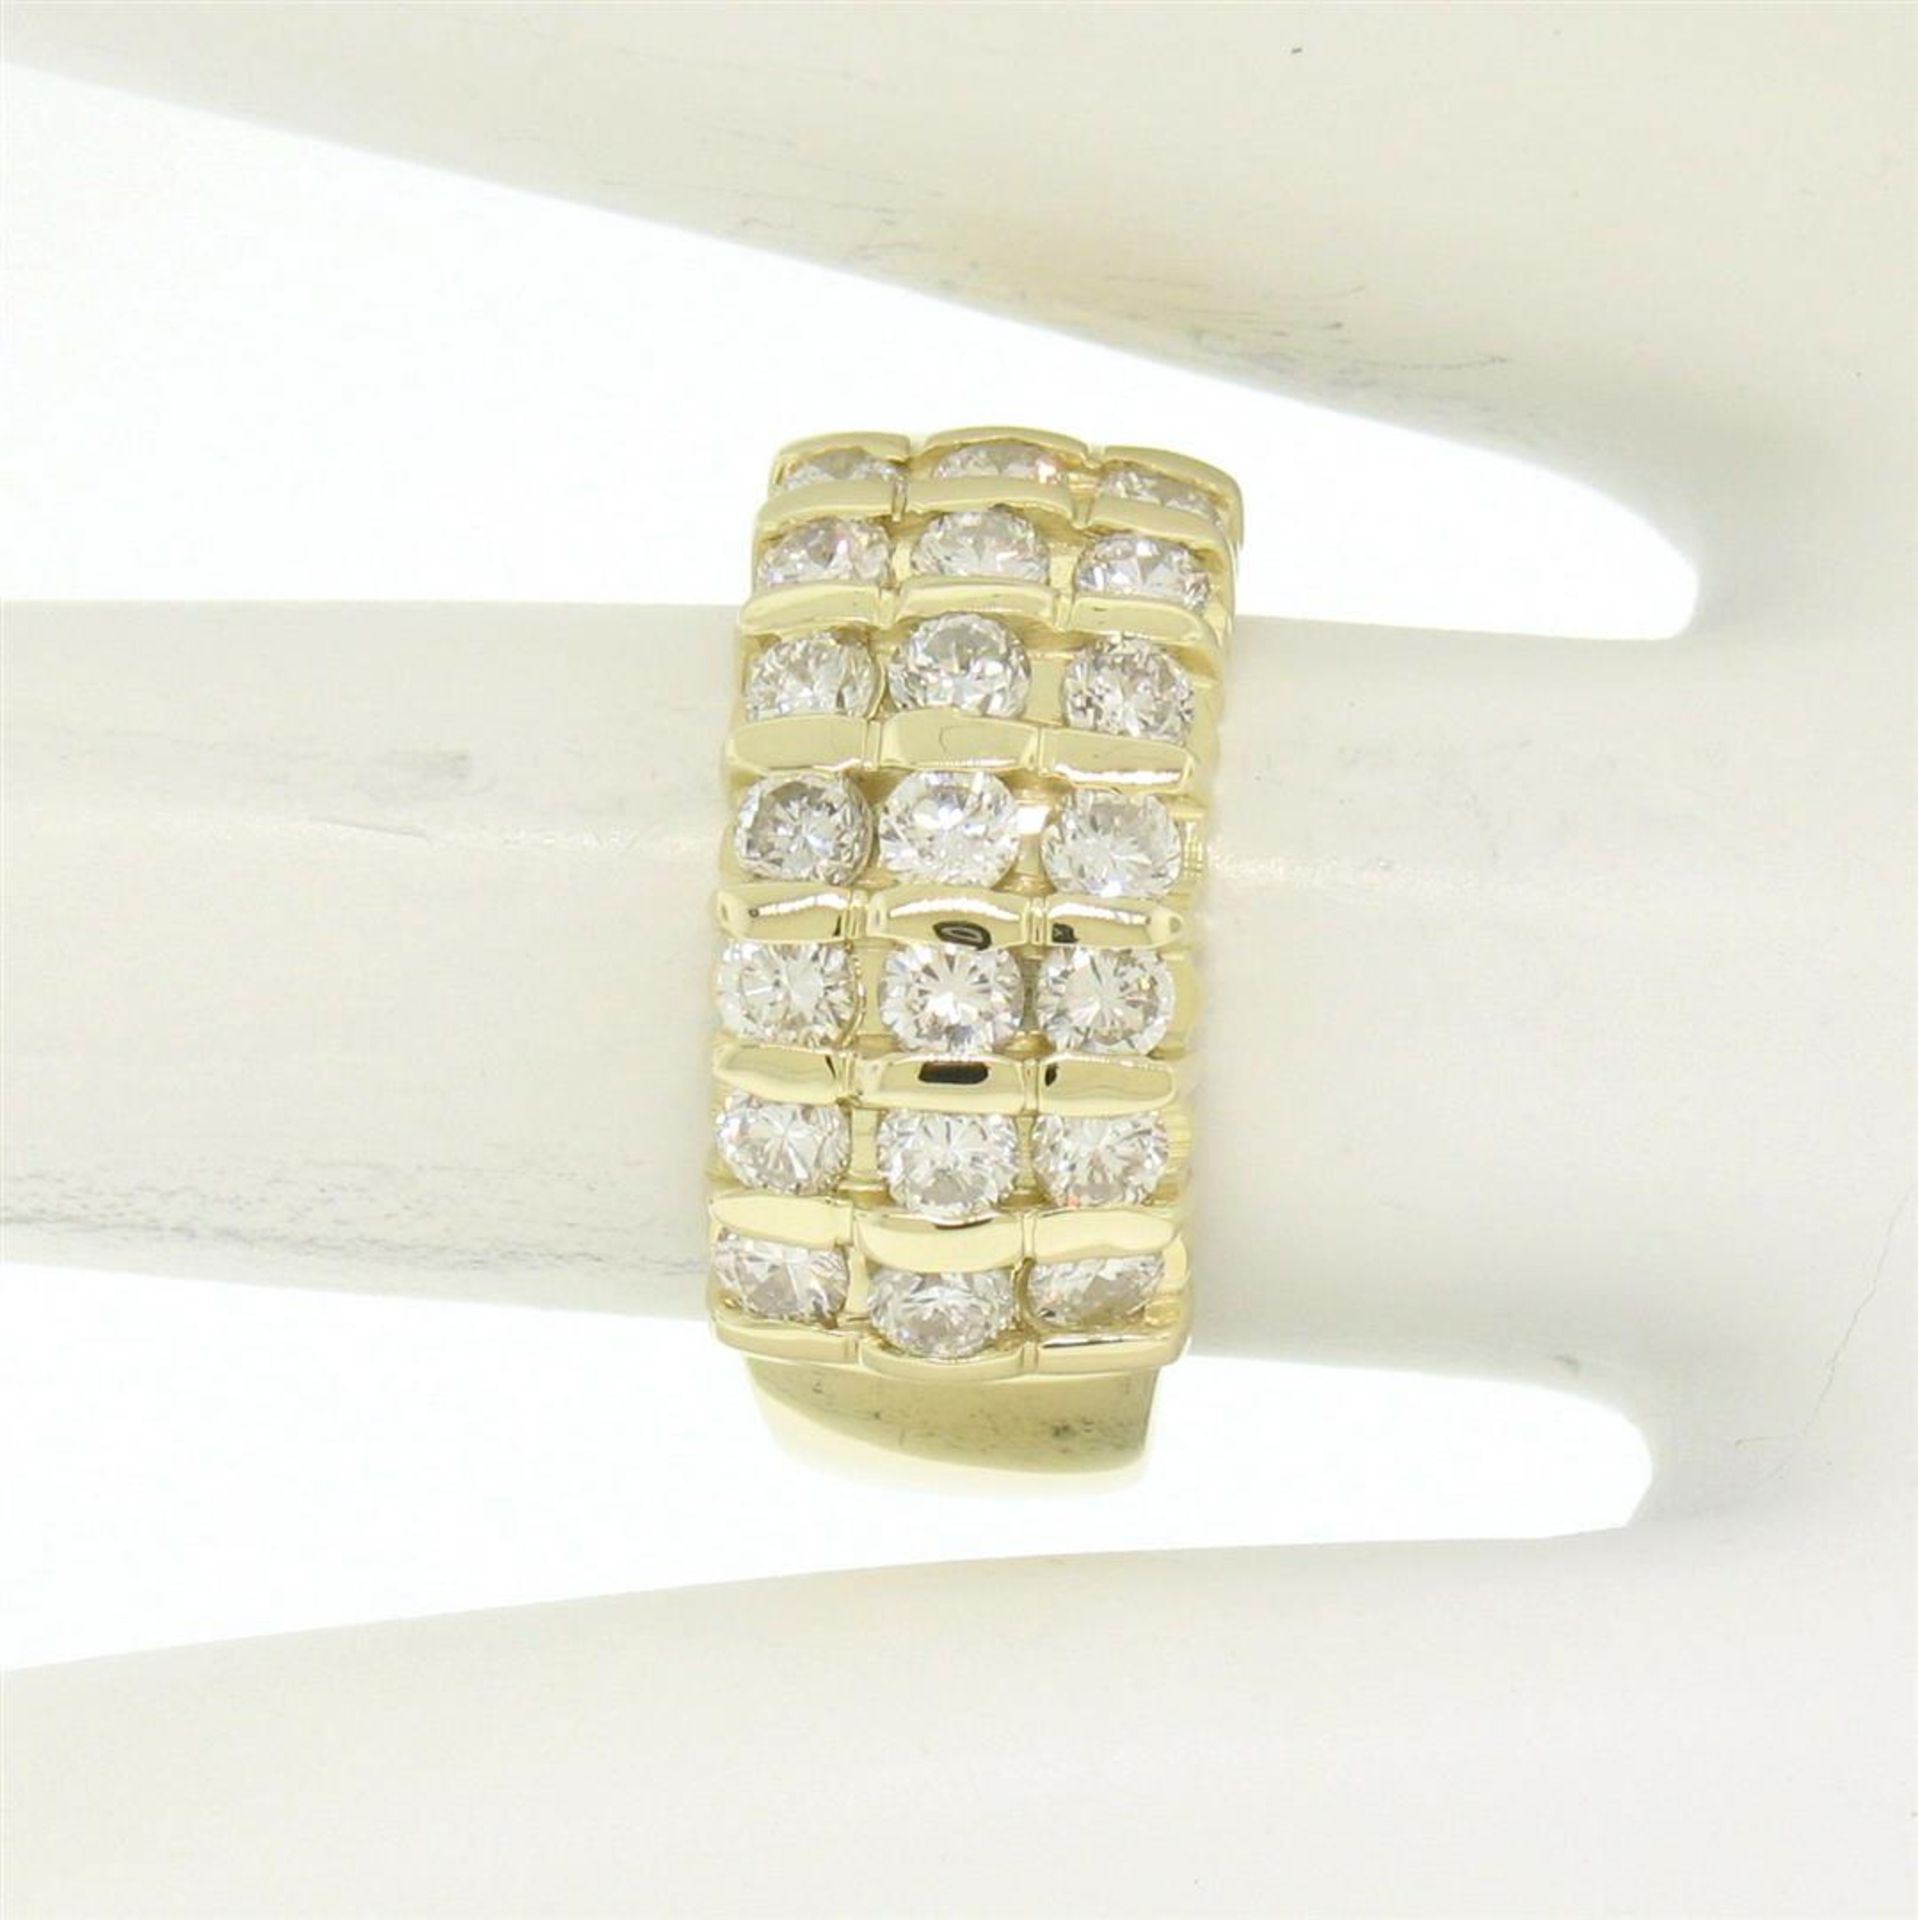 14kt Yellow Gold 1.48 ctw Bar Set Round Diamond Wide Band Ring - Image 7 of 7